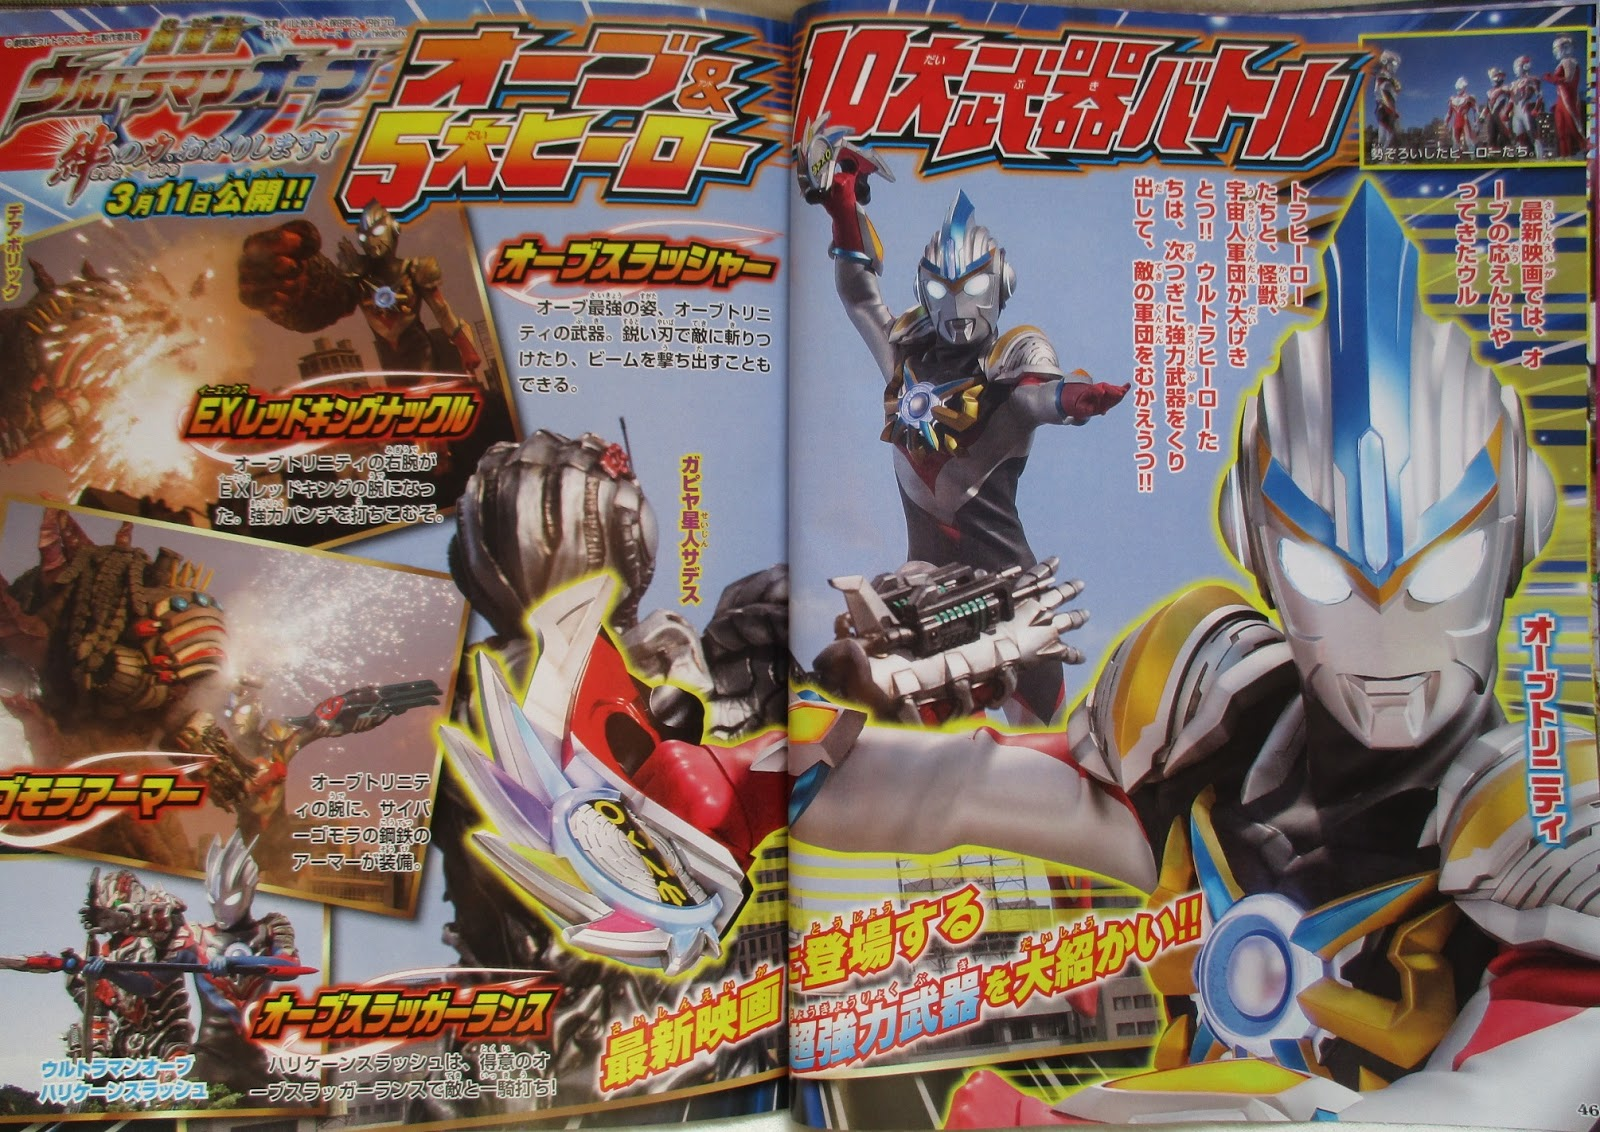 Bandai Ultra Hero Orb 06 Ultraman Trinity Daftar Harga 0479479 Shf Act Origin 15163 Heres Another Updates For The Upcoming Movie Lend Me Power Of